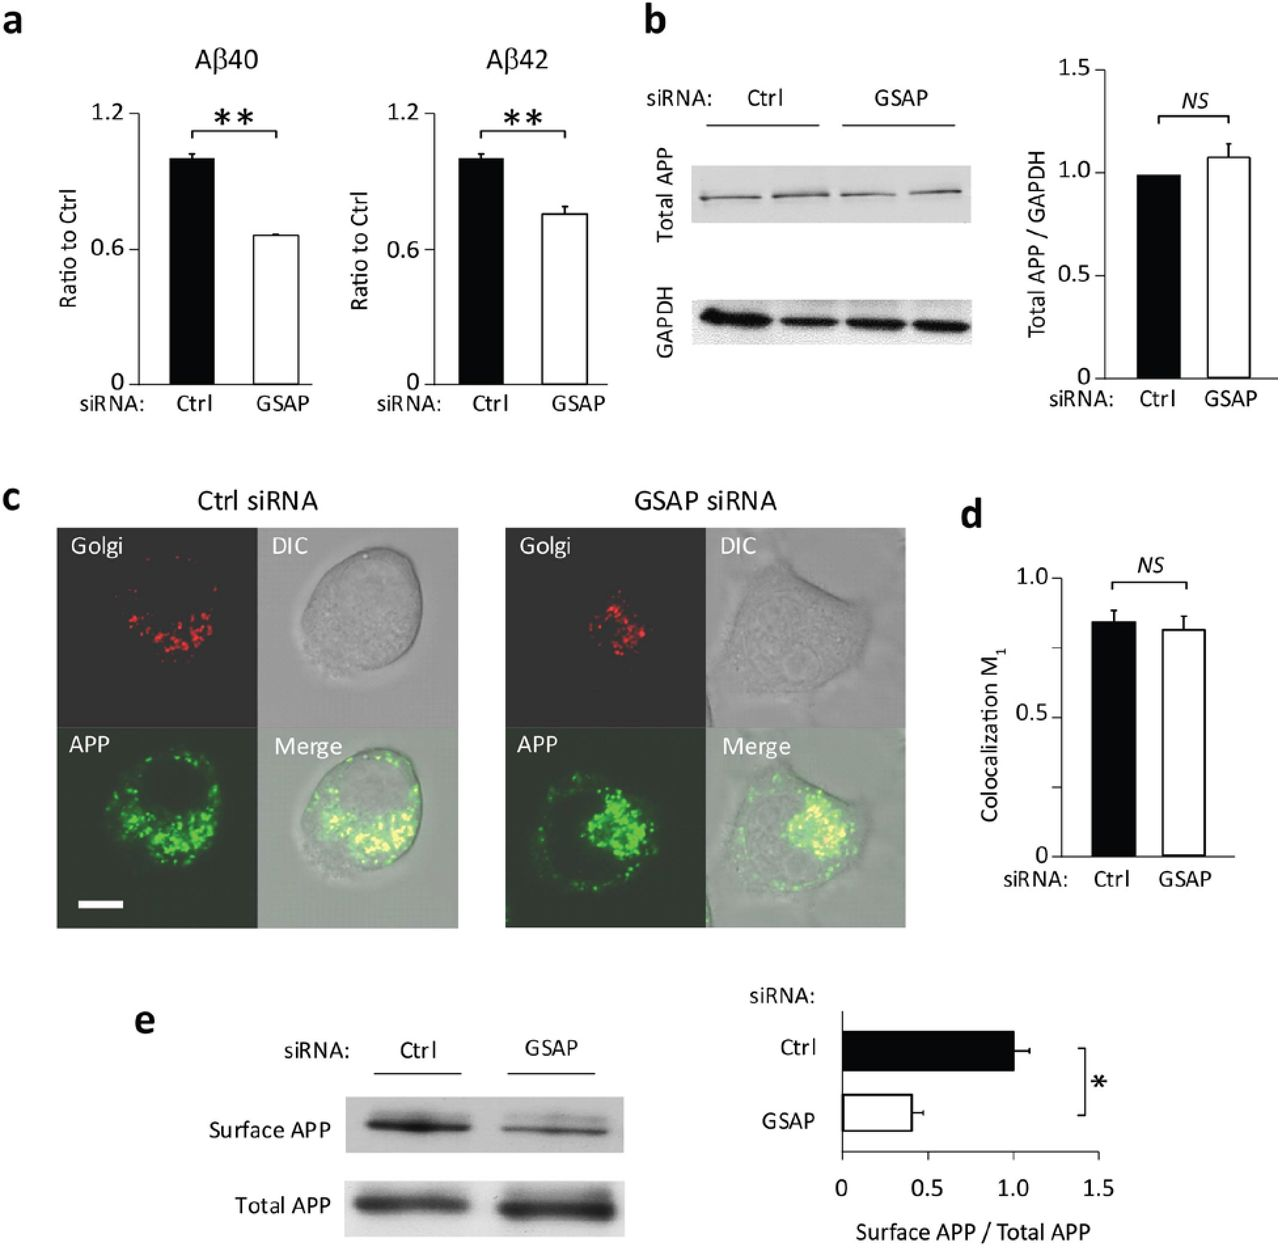 Effect of GSAP knockdown on Aβ secretation and APP distribution. (a) Downregulation of Aβ40 and Aβ42 secretation by GSAP knockdown using control (CTRL) and GSAP siRNA in N2a-695 cells. Secreted Aβ40 and Aβ42 levels were measured by ELISA (mean±SEM; n=3). (b) Immunoblotting analysis of the total APP protein level following transfection with CTRL and GSAP siRNA (Left) and quantification (Right). (mean±SEM; n=5). (c) Representative images of subcellular localization of APP and Golgi in living N2a cells infected with a baculovirus expressing an RFP-Golgi marker, and then transfected with APP-GFP plasmids. (d) Colocalization coefficients m1 quantification for APP-GFP and RFP-Golgi (n = 12; Scale bar: 10 μm). (e) Cell surface APP was biotinylated and precipitated with streptavidin-coupled beads following transfection with CTRL and GSAP siRNA. Total APP in the lysates and the precipitated surface APP were detected by immunoblotting (Left) and quantification (Right) (means±SEM; n=3). *P